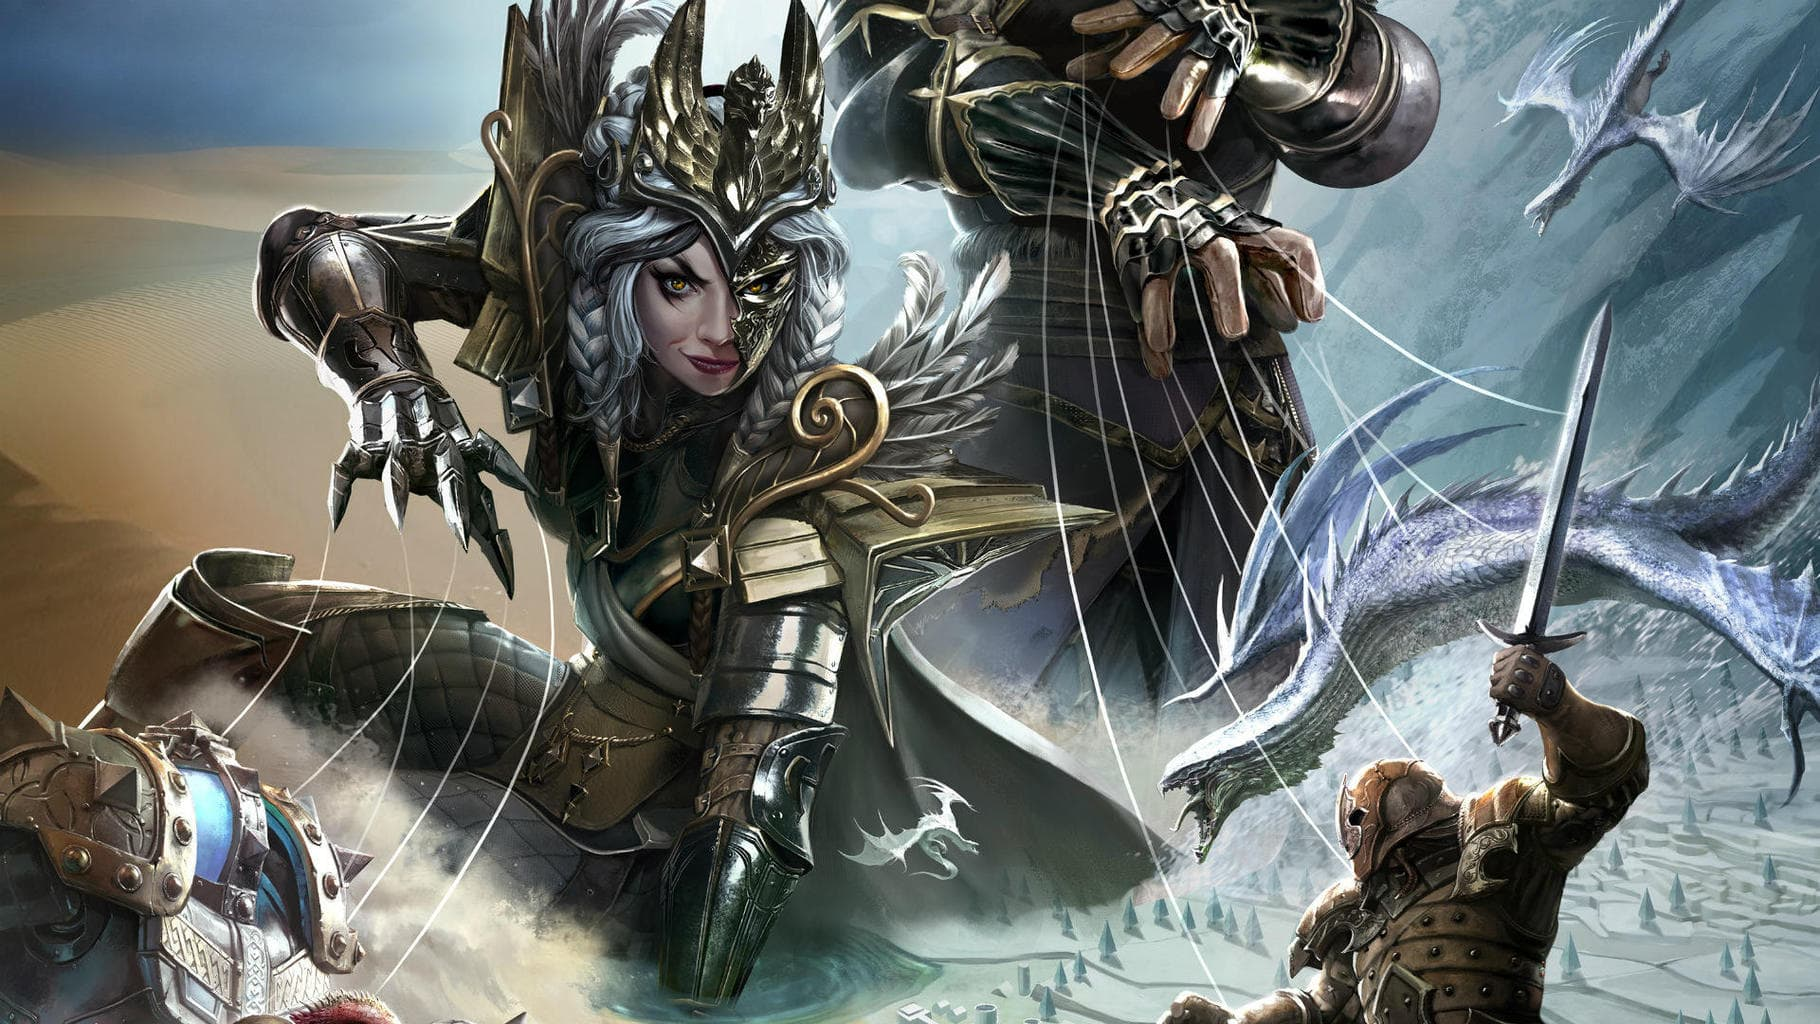 divinity fallen heroes is on indefinite hiatus due to lack of time and resources